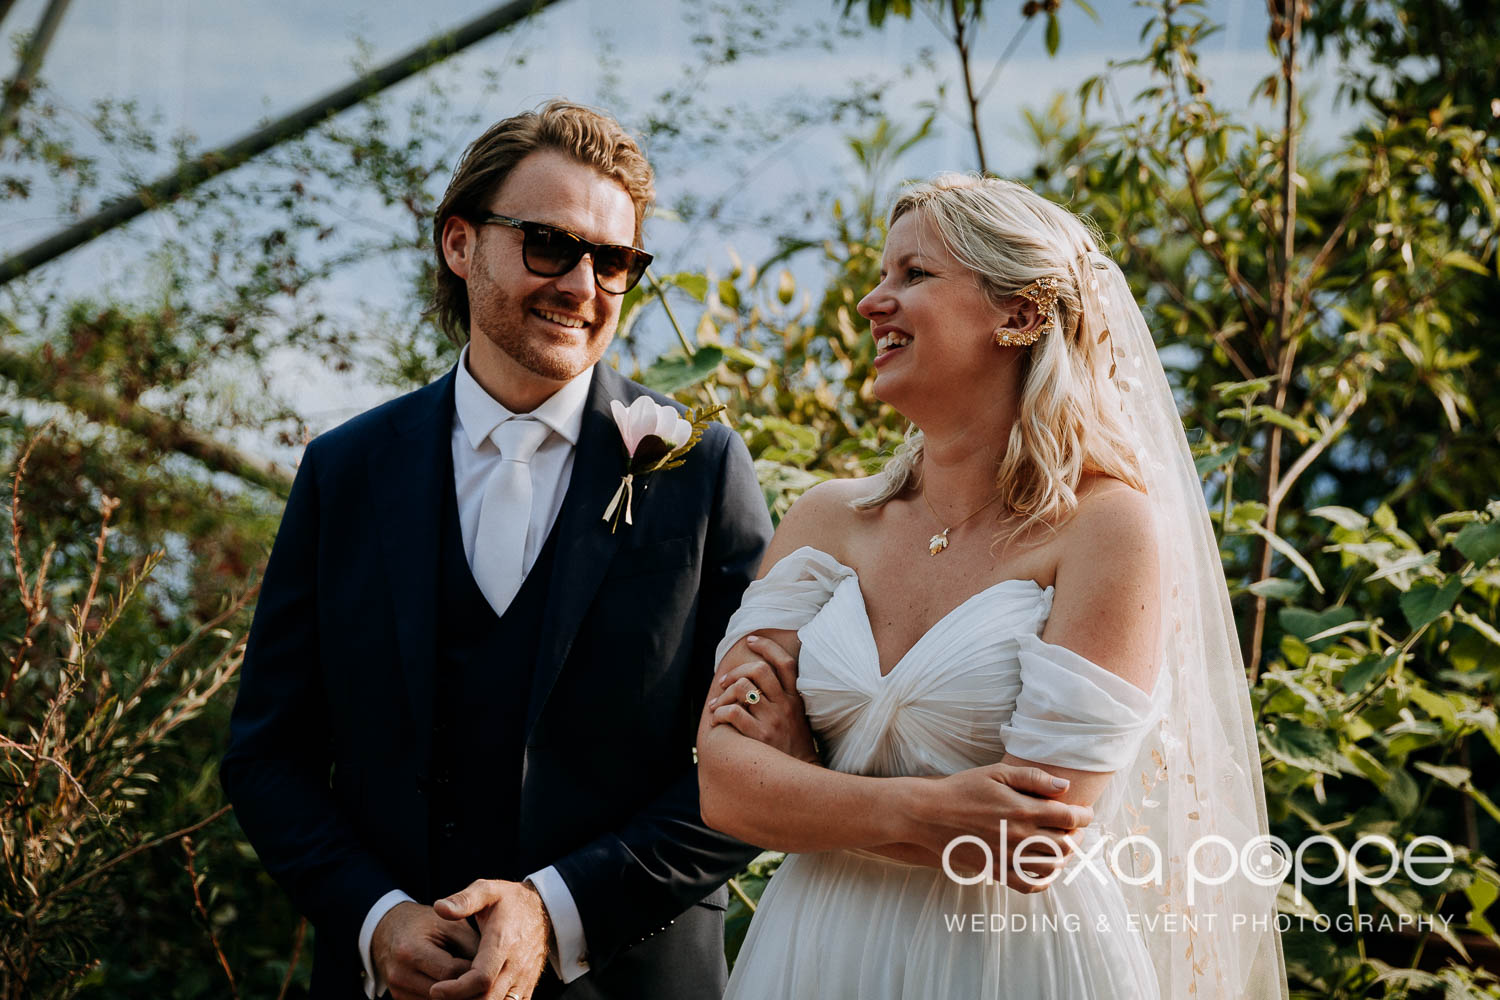 VA_wedding_edenproject_carnglaze_68.jpg